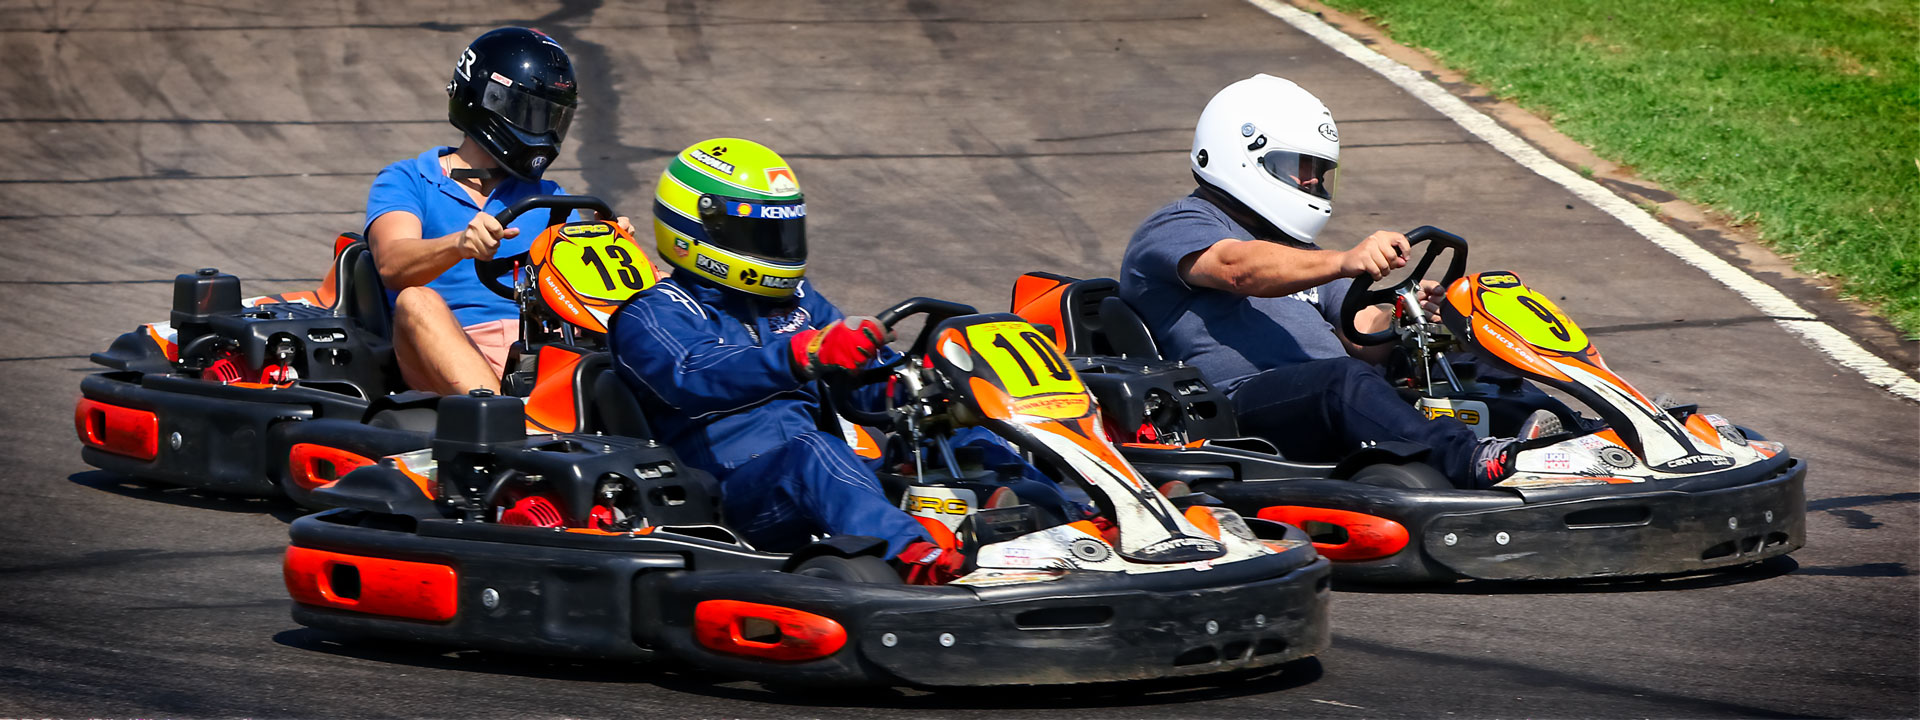 BMW Car Club Gauteng Go-Karting Social - 2019-03-03 - Photographs